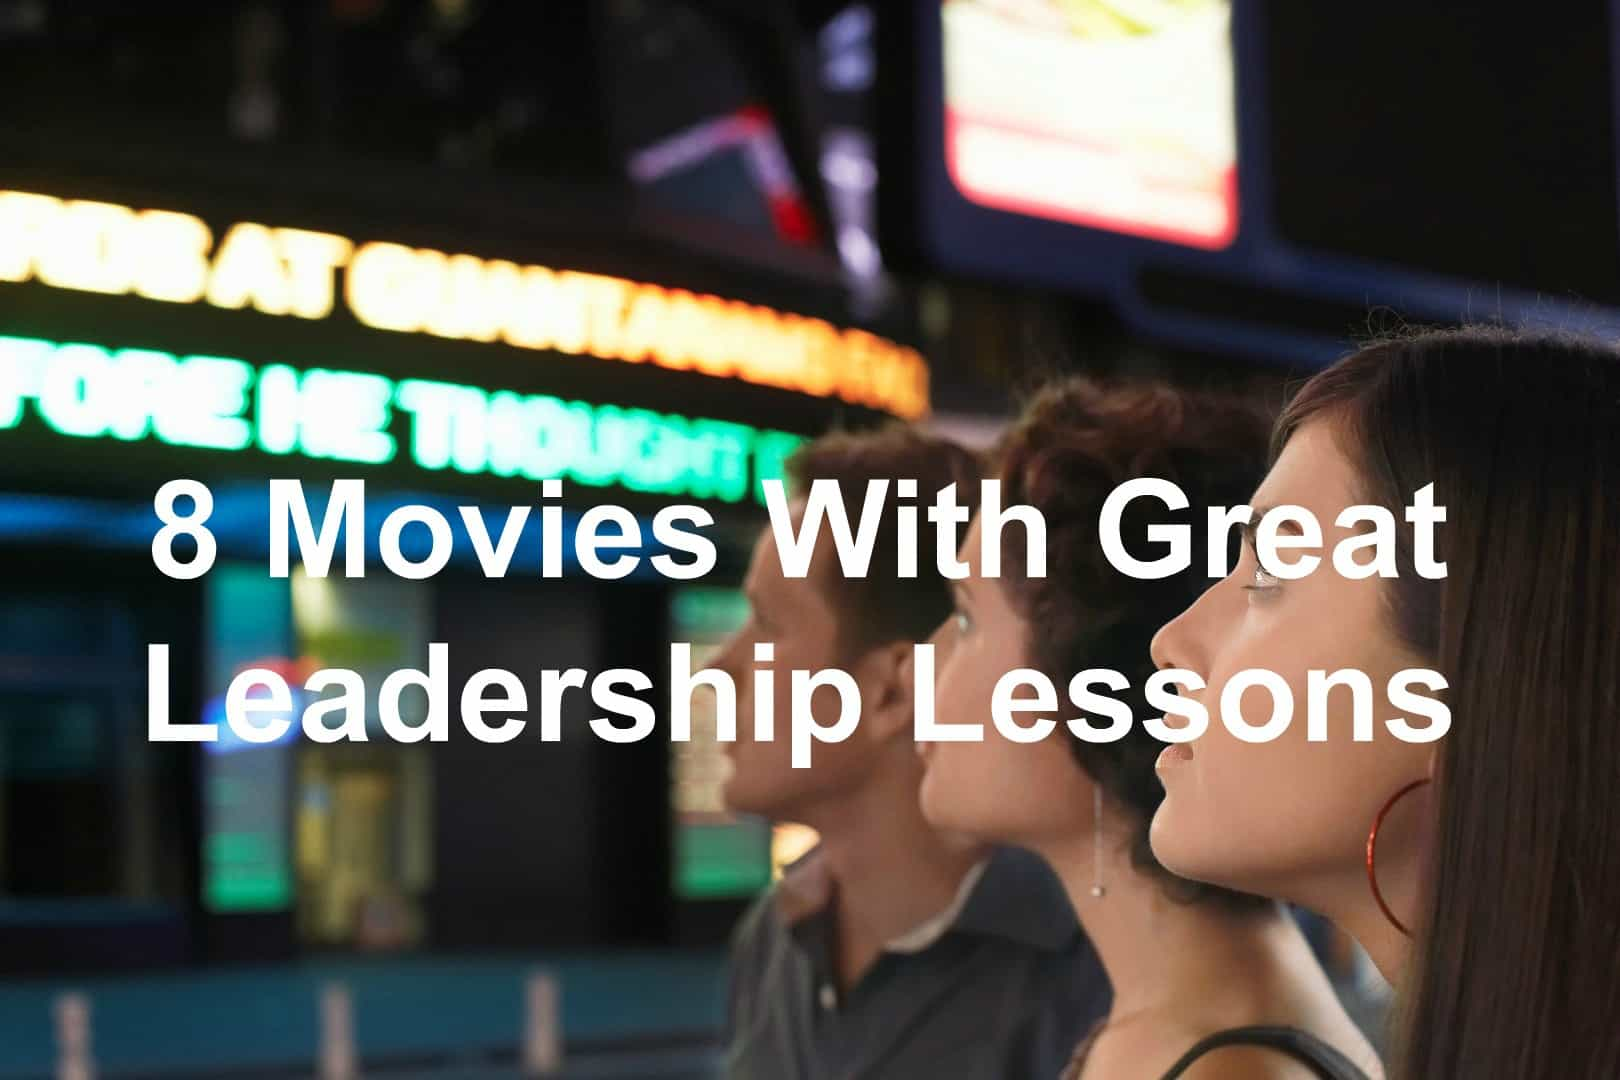 leadership lessons from the movies